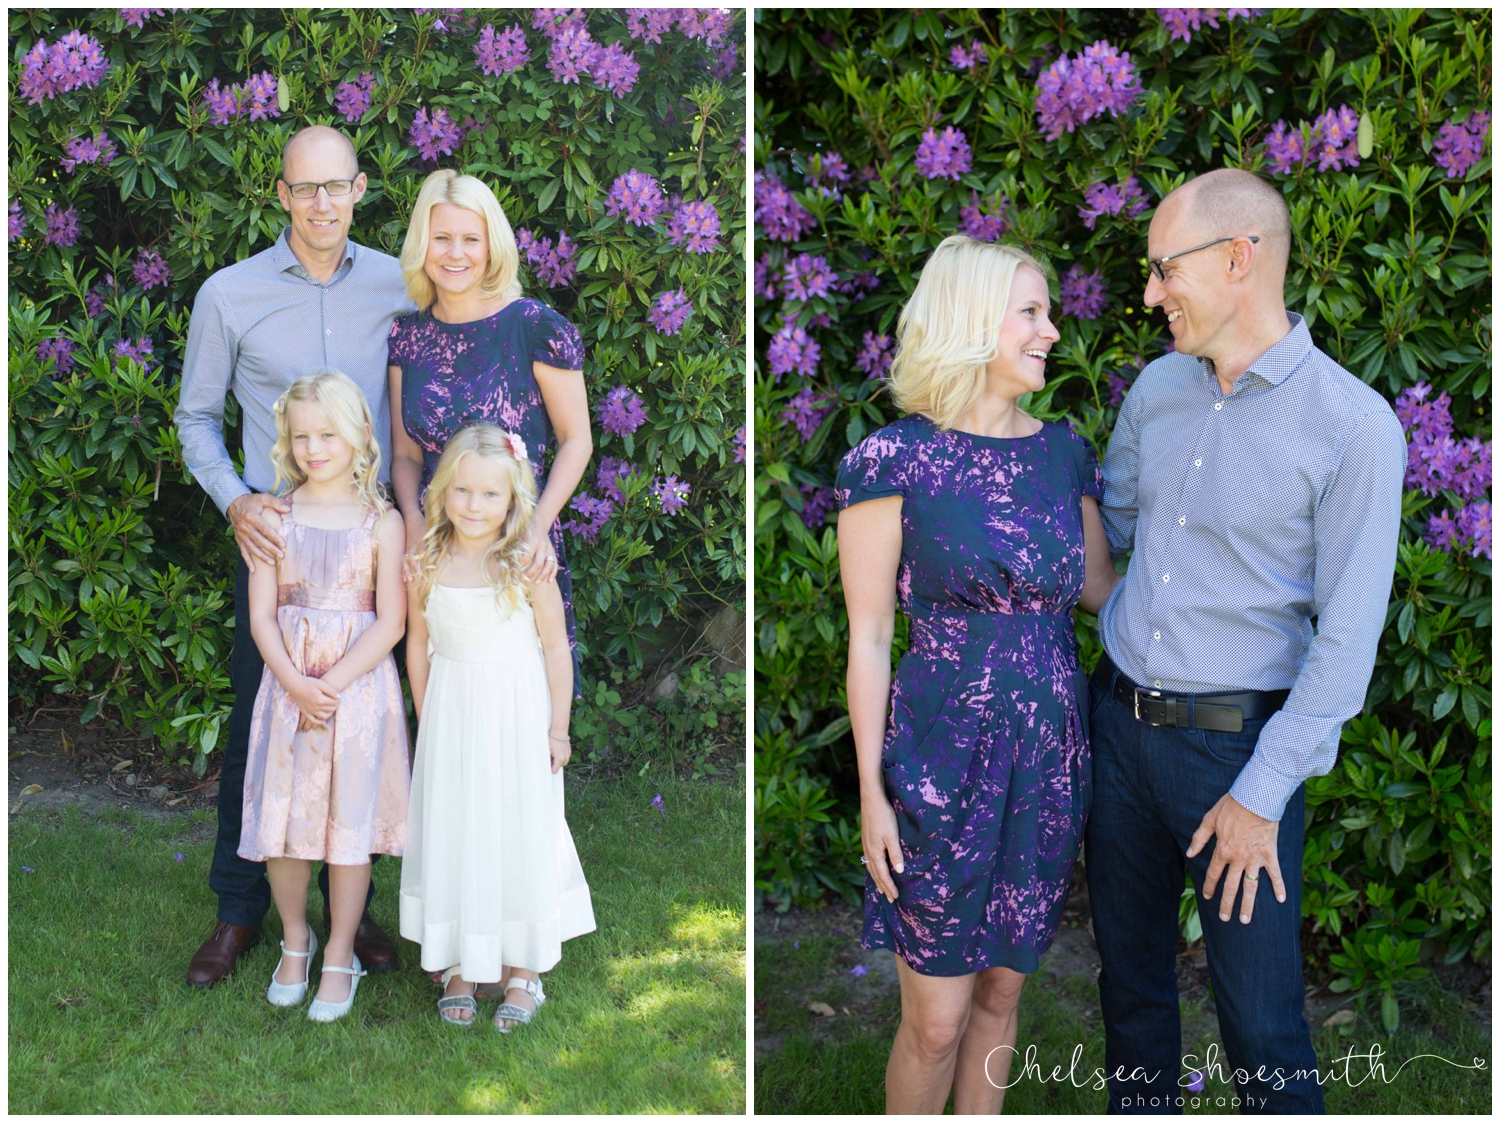 (85 of 125) Louise Roberts Family Portrait Wilmslow Chelsea Shoesmith Photography_